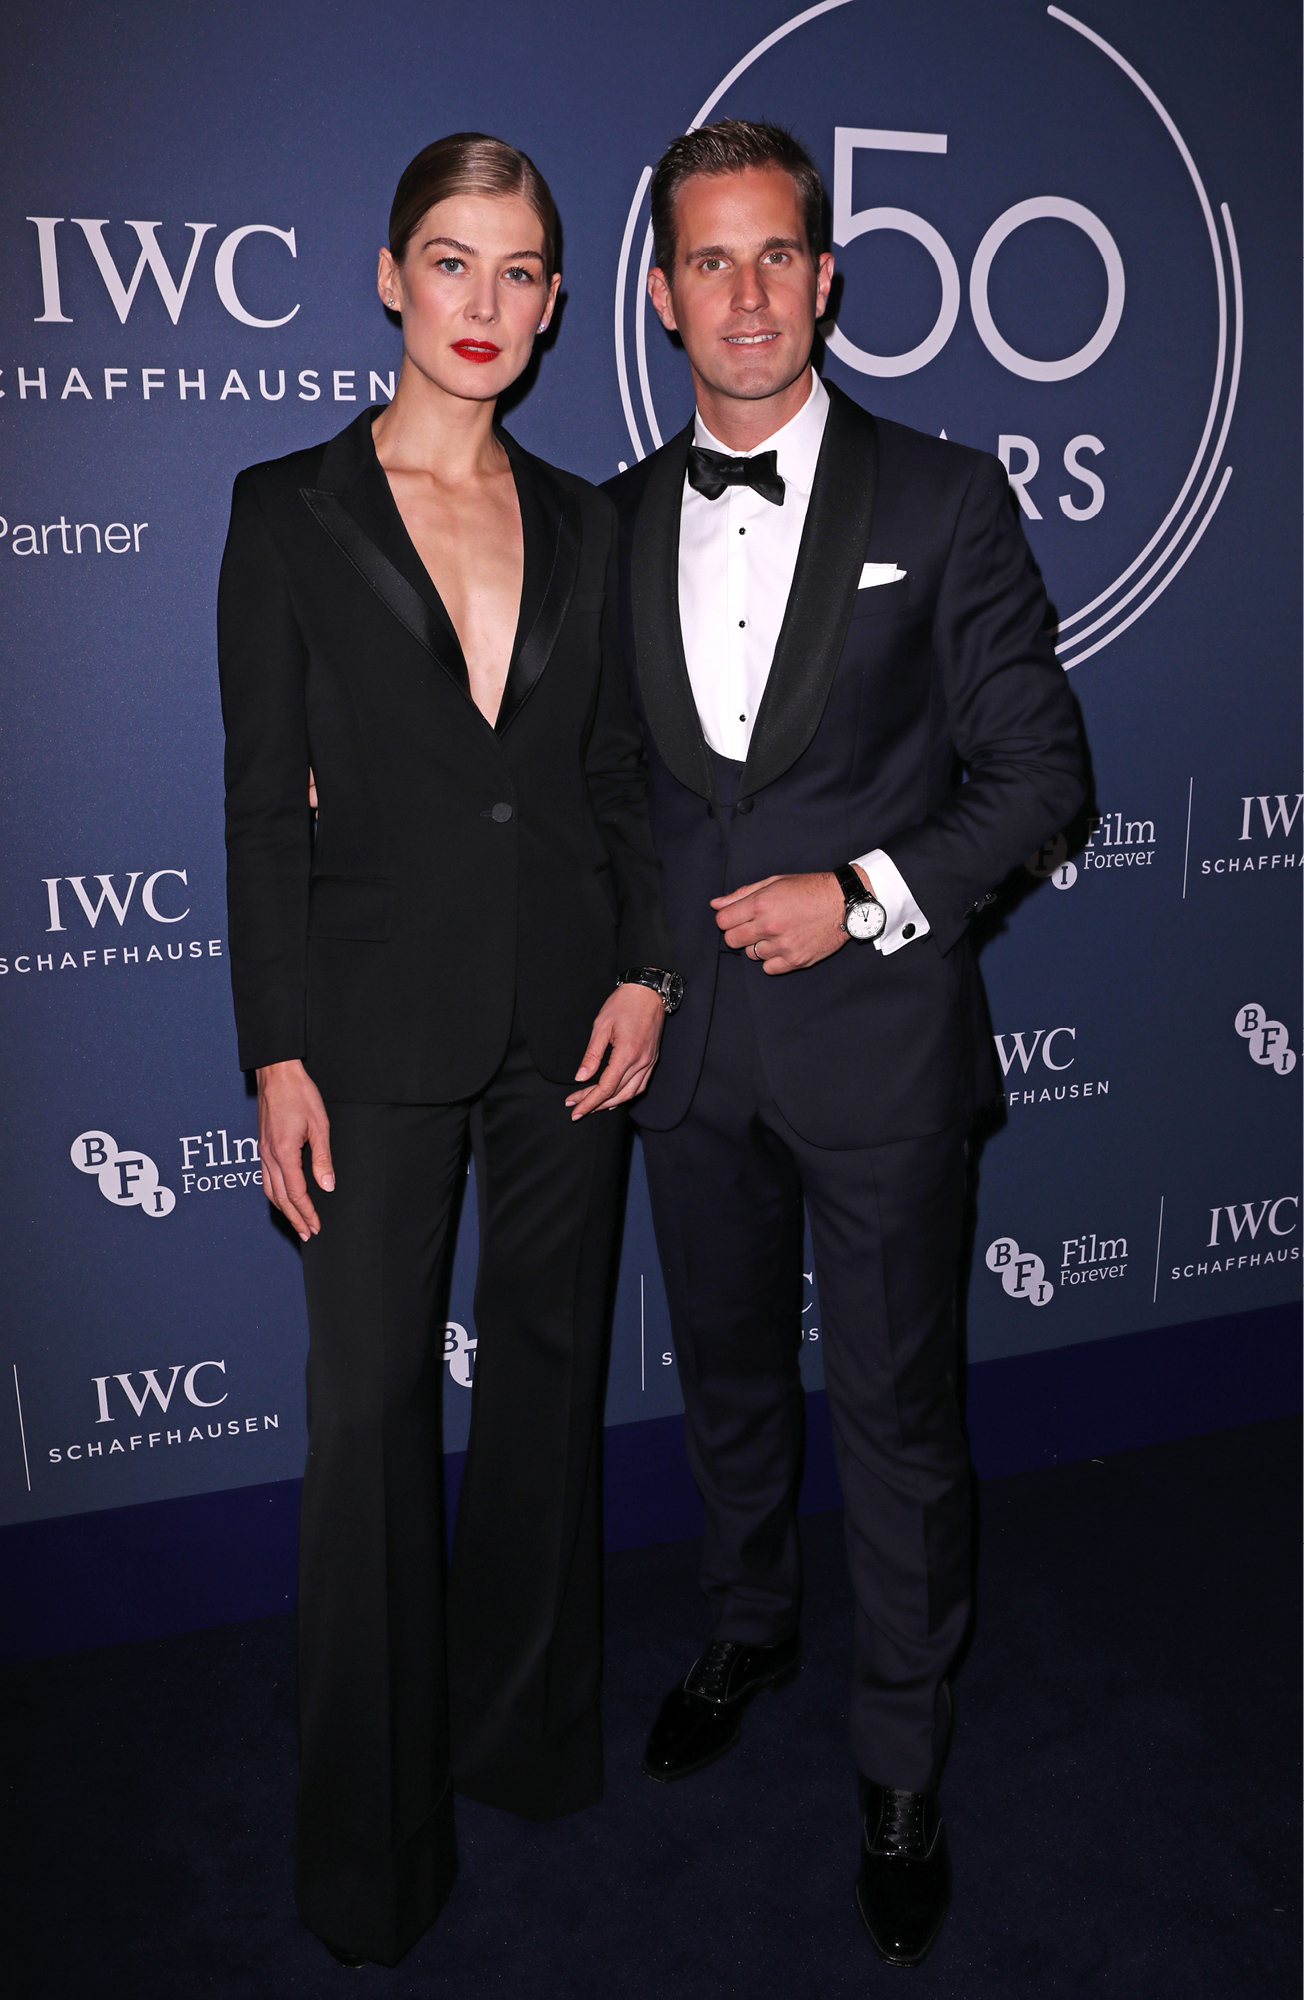 Rosamund Pike poses with IWC CEO Christoph Grainger-Herr